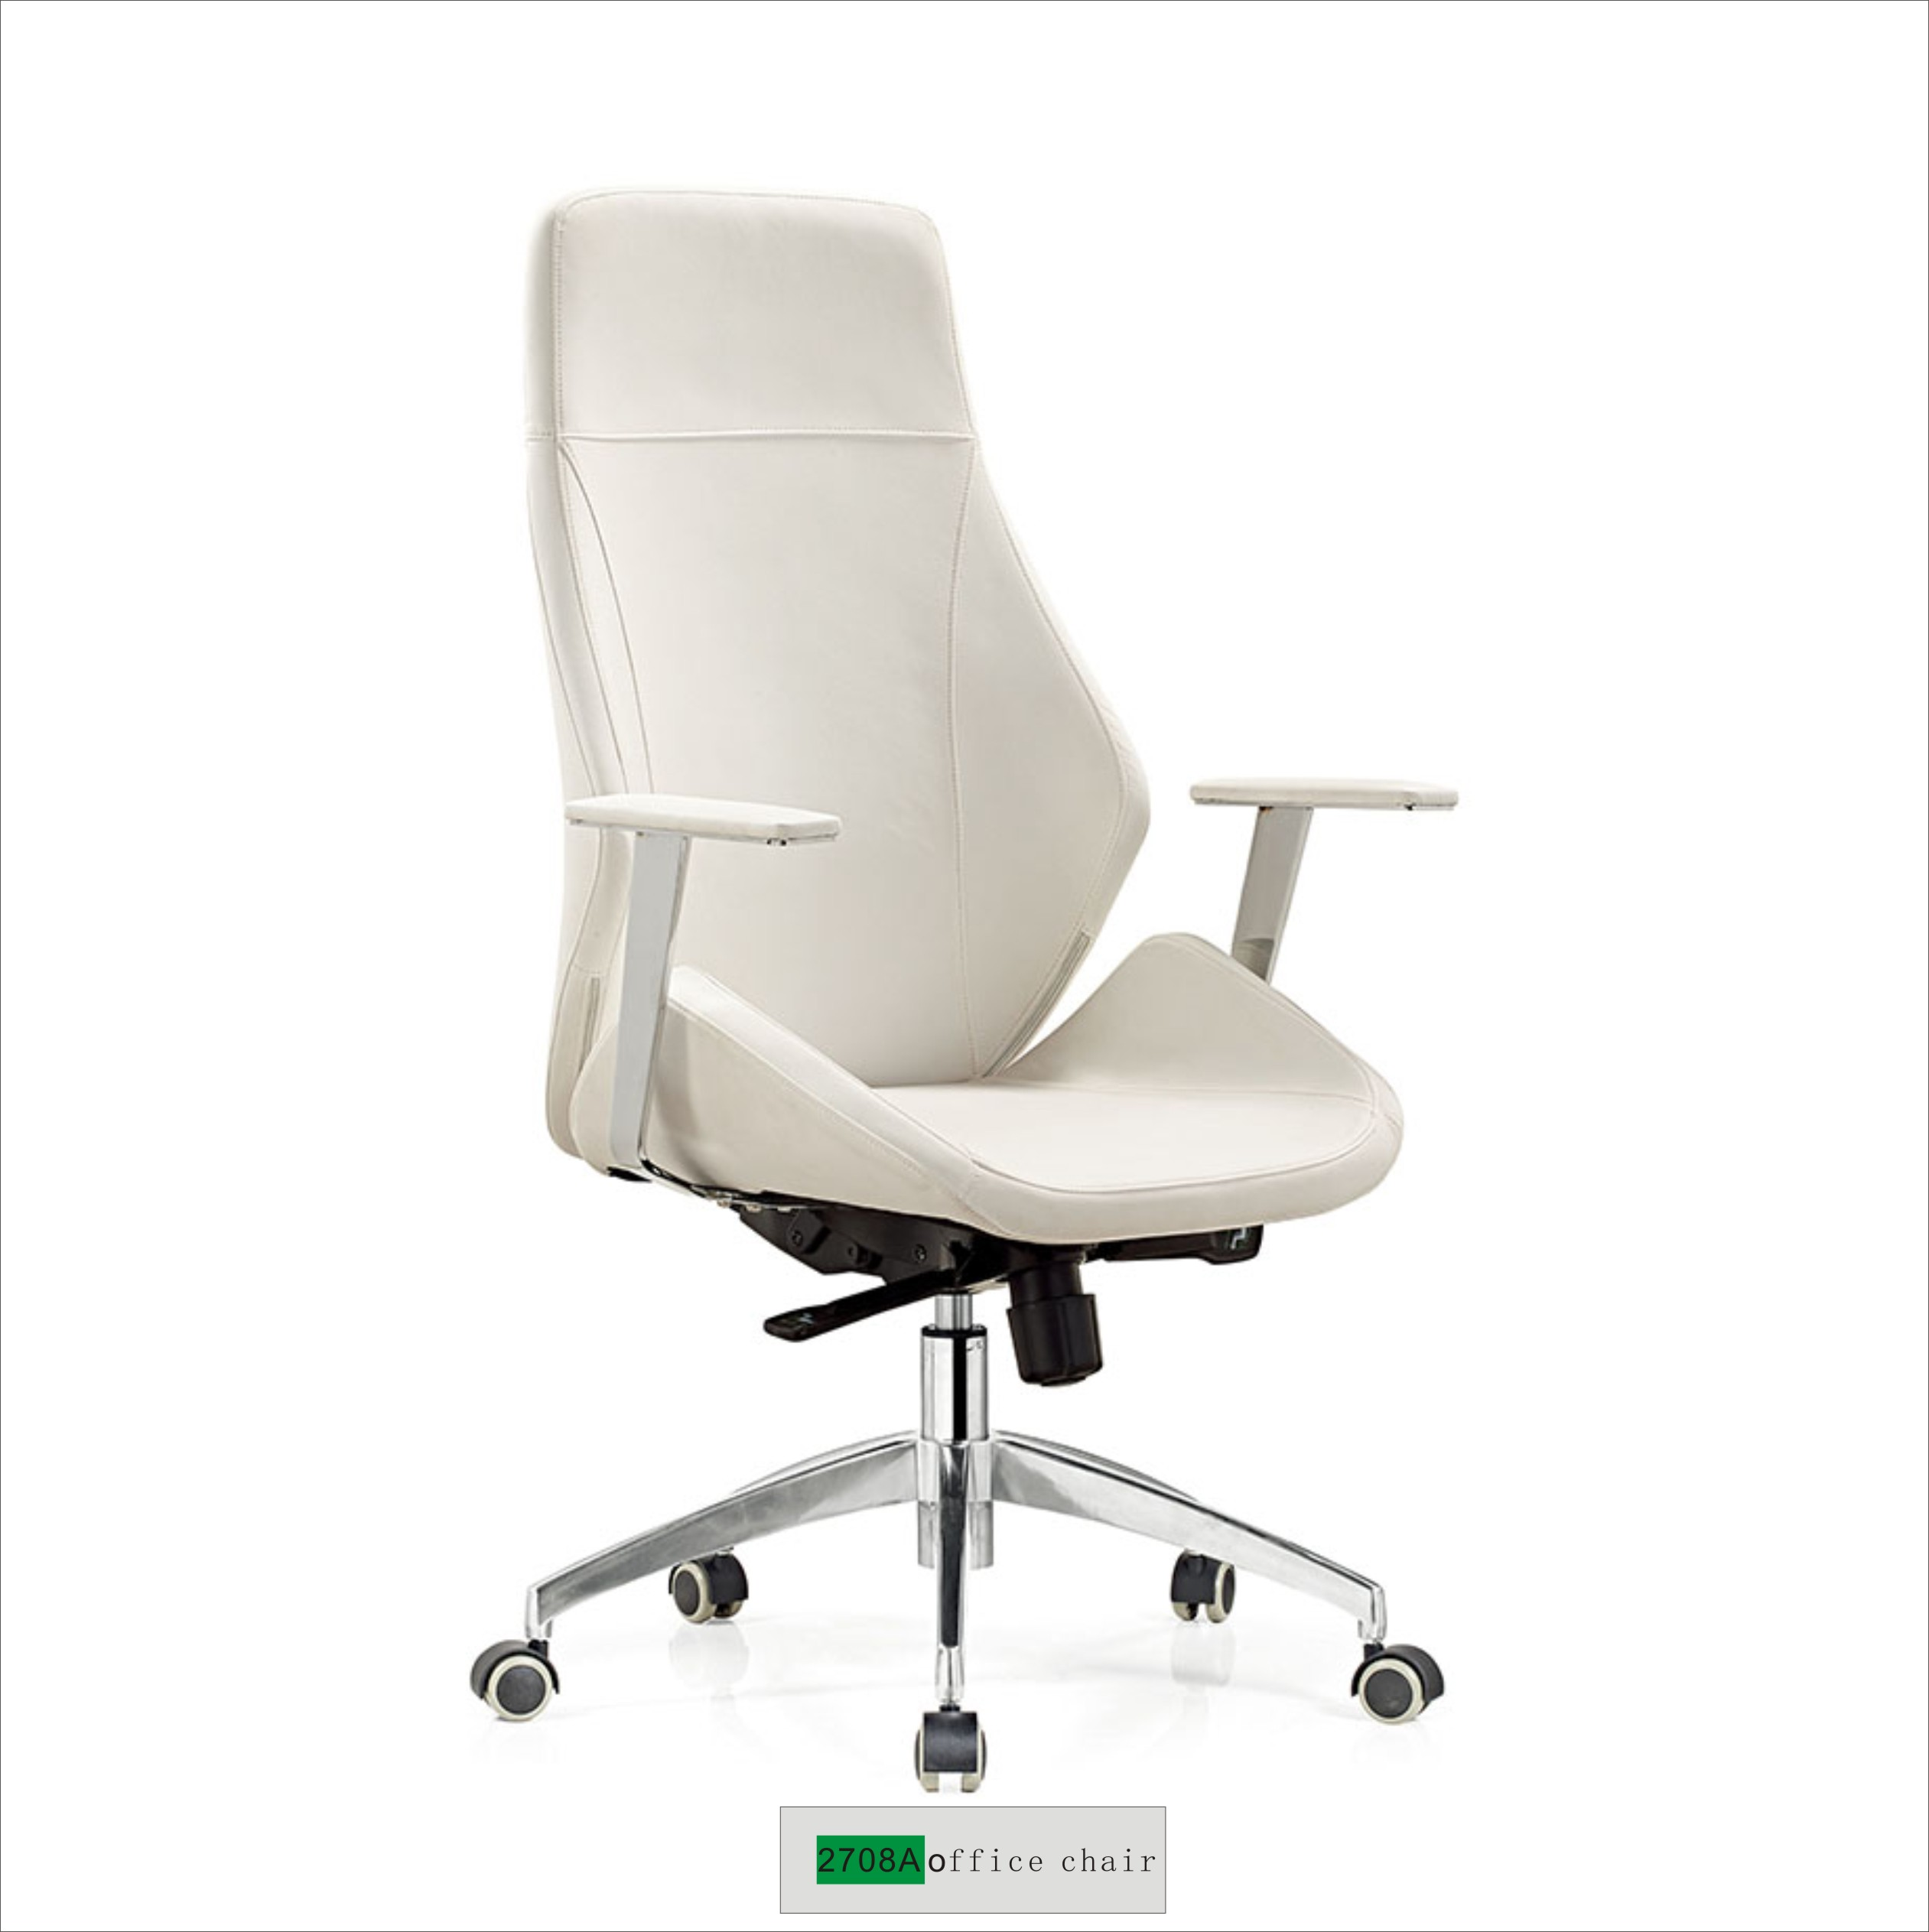 Comfy Office Chair 2708A